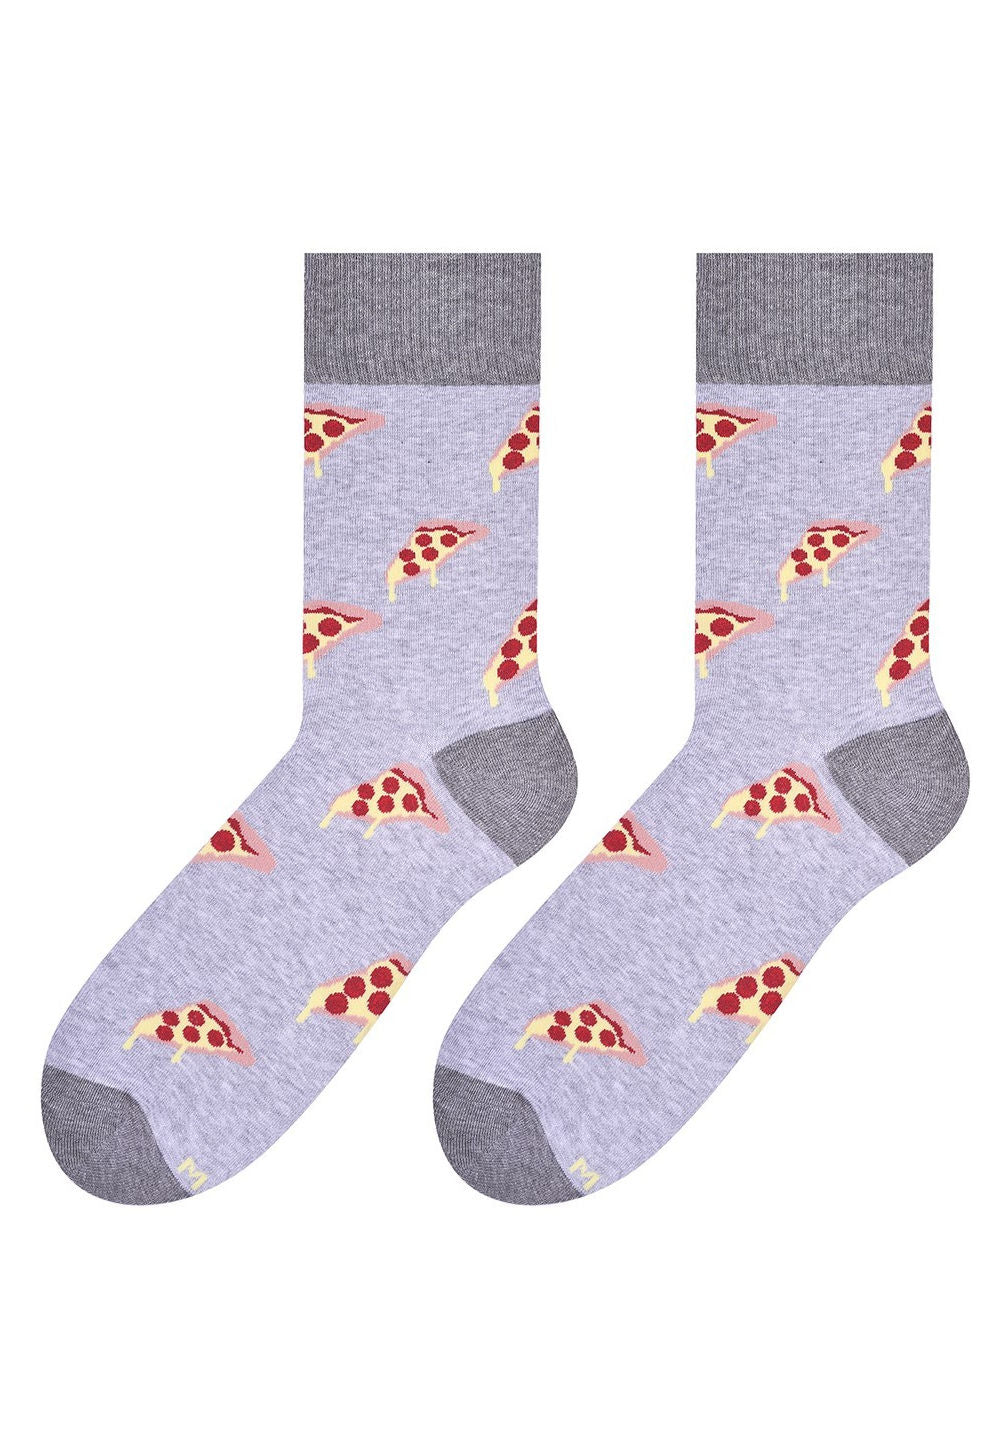 Pizza Slices Patterned Socks in Grey by More in light grey marl